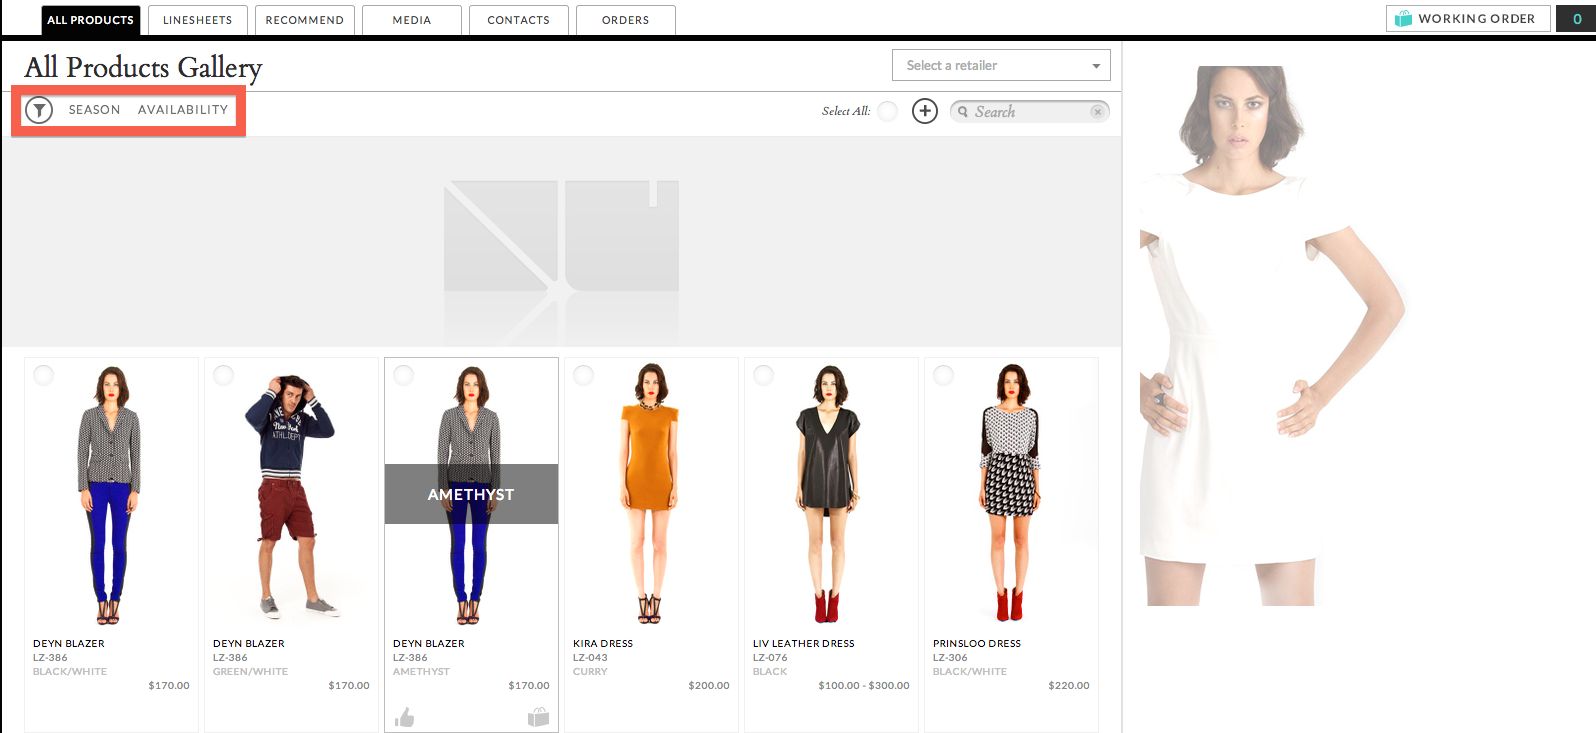 How to add multiple products images using a CSV file in Shopify